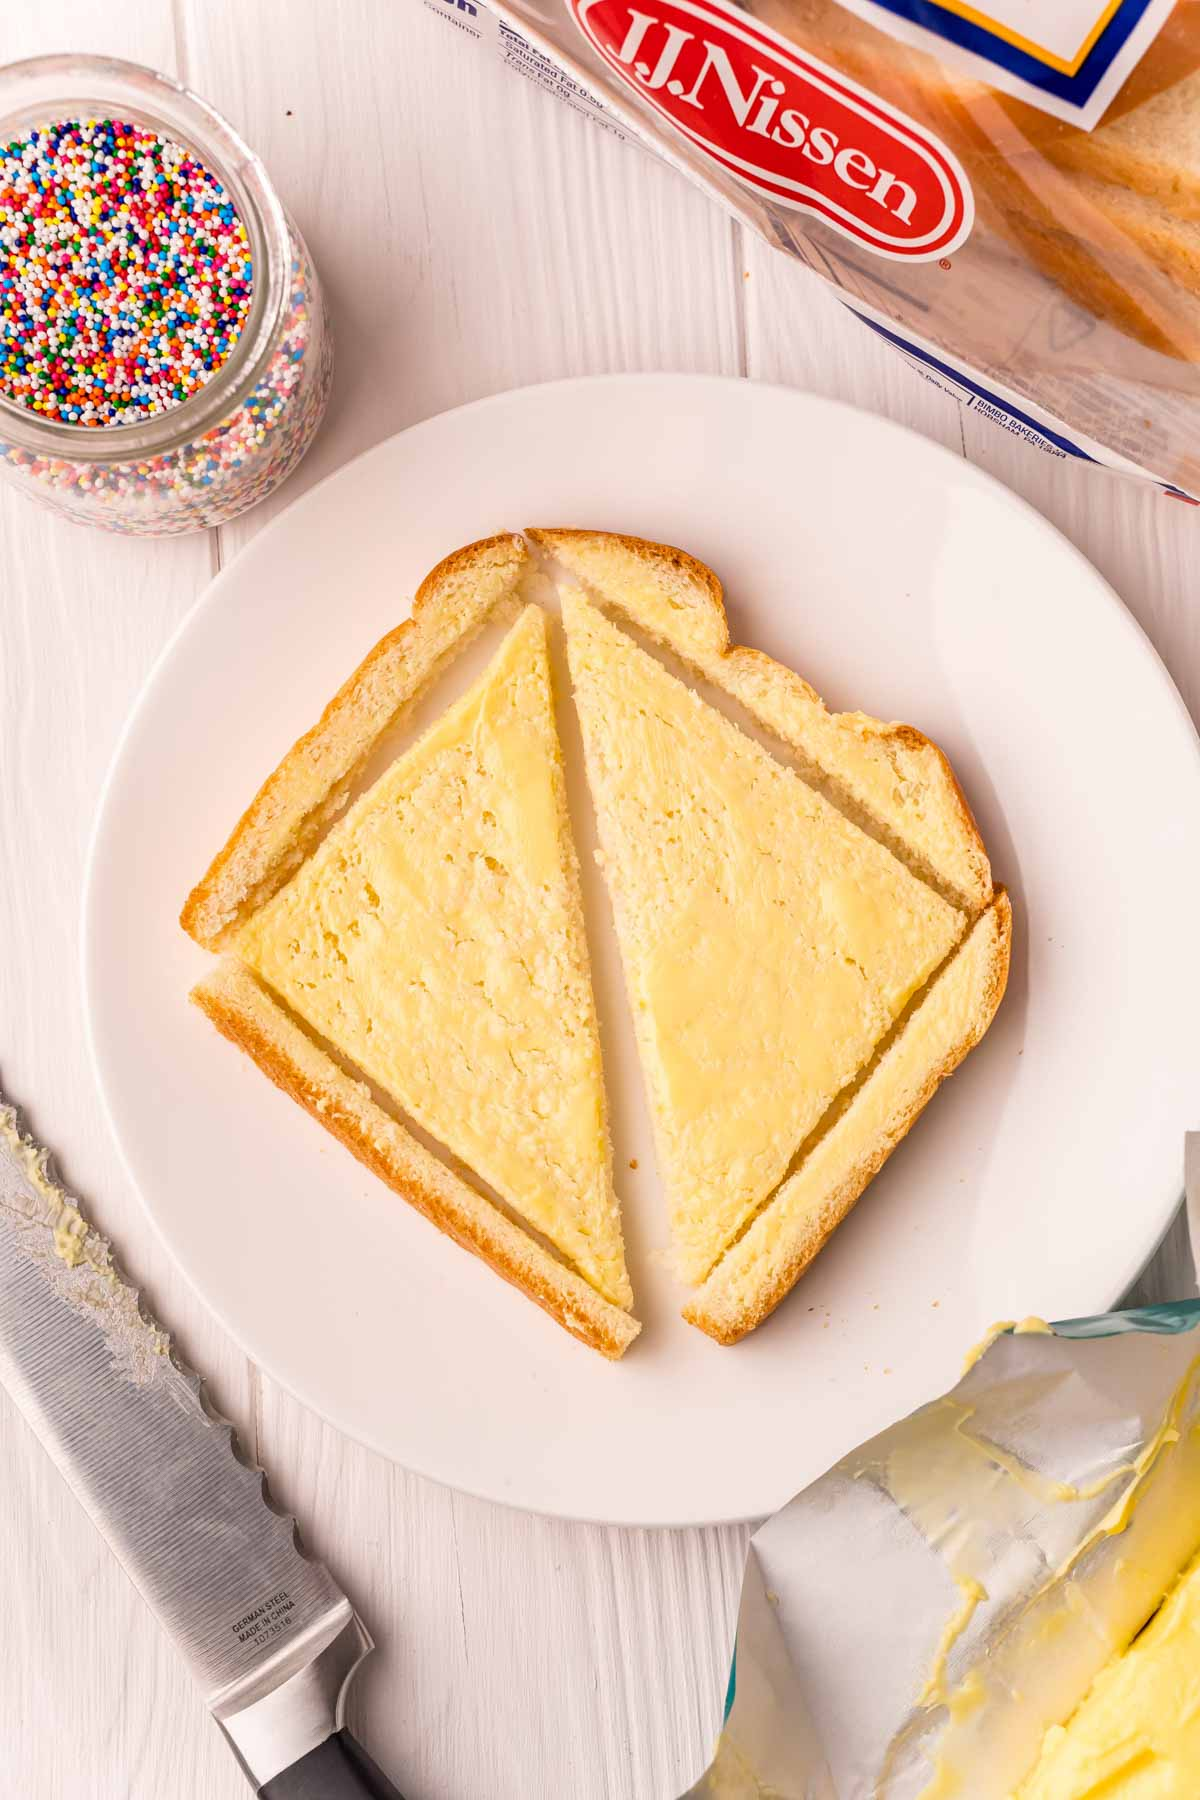 piece of bread with butter on it